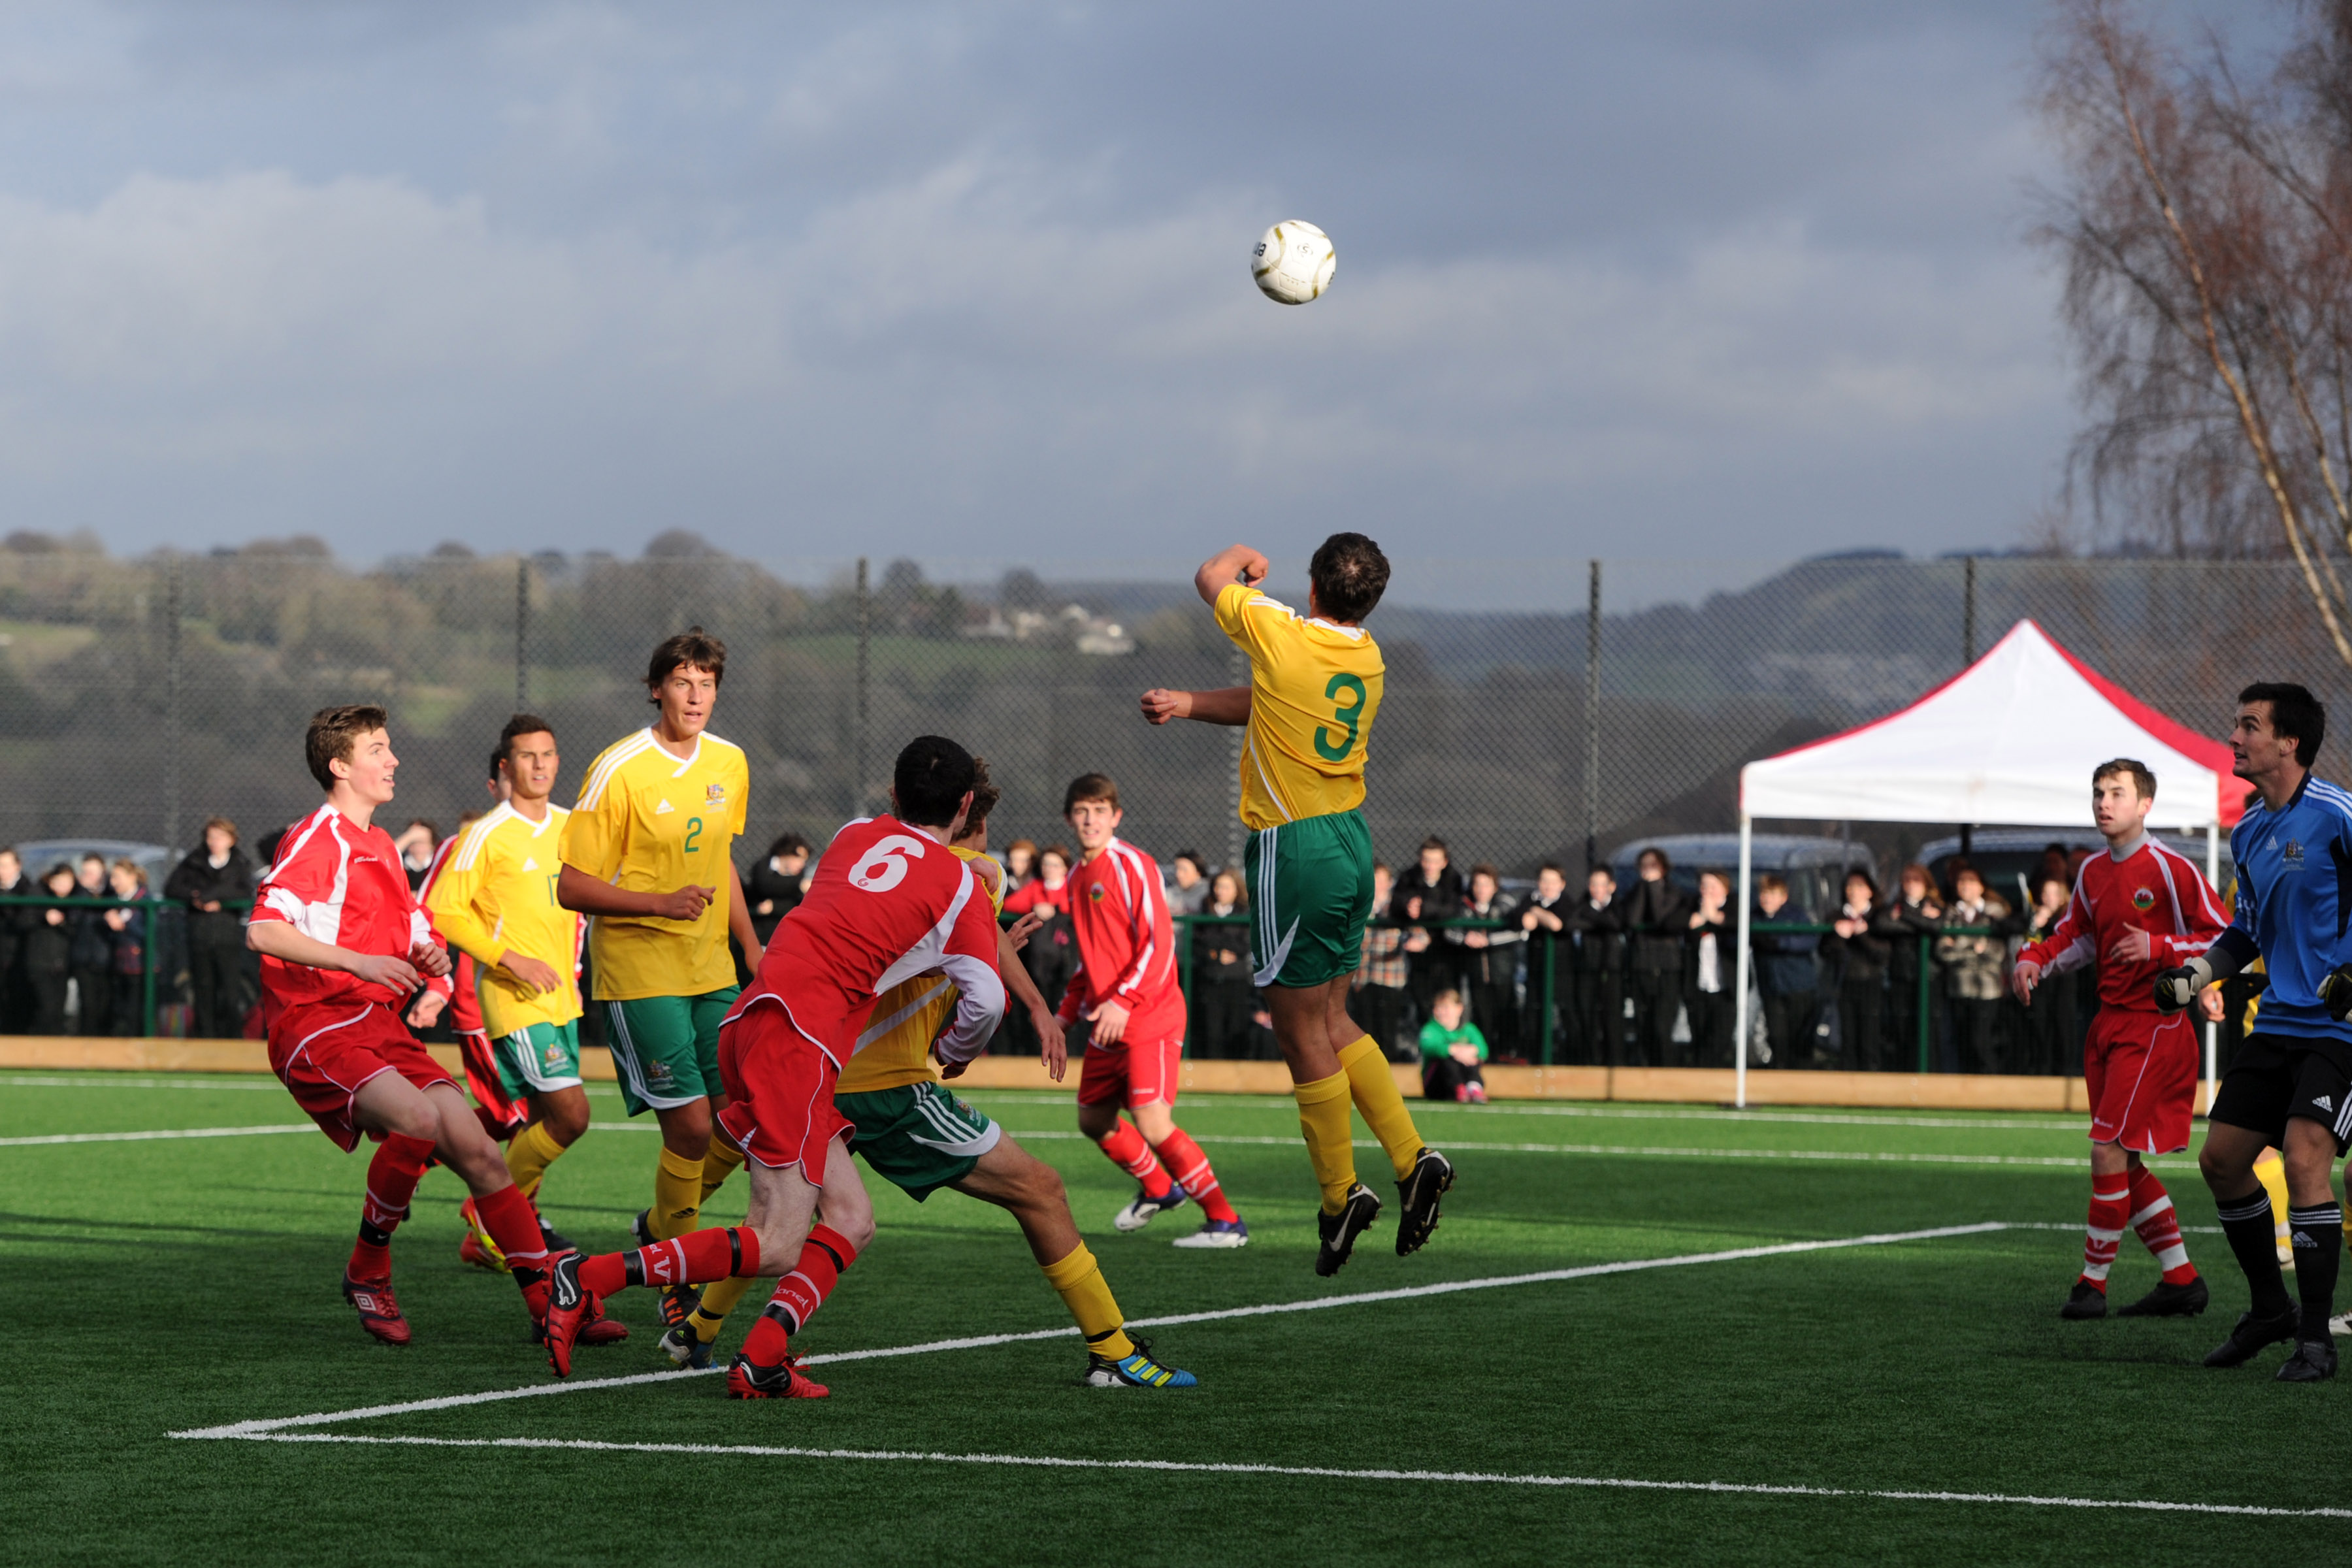 Welsh Colleges Football